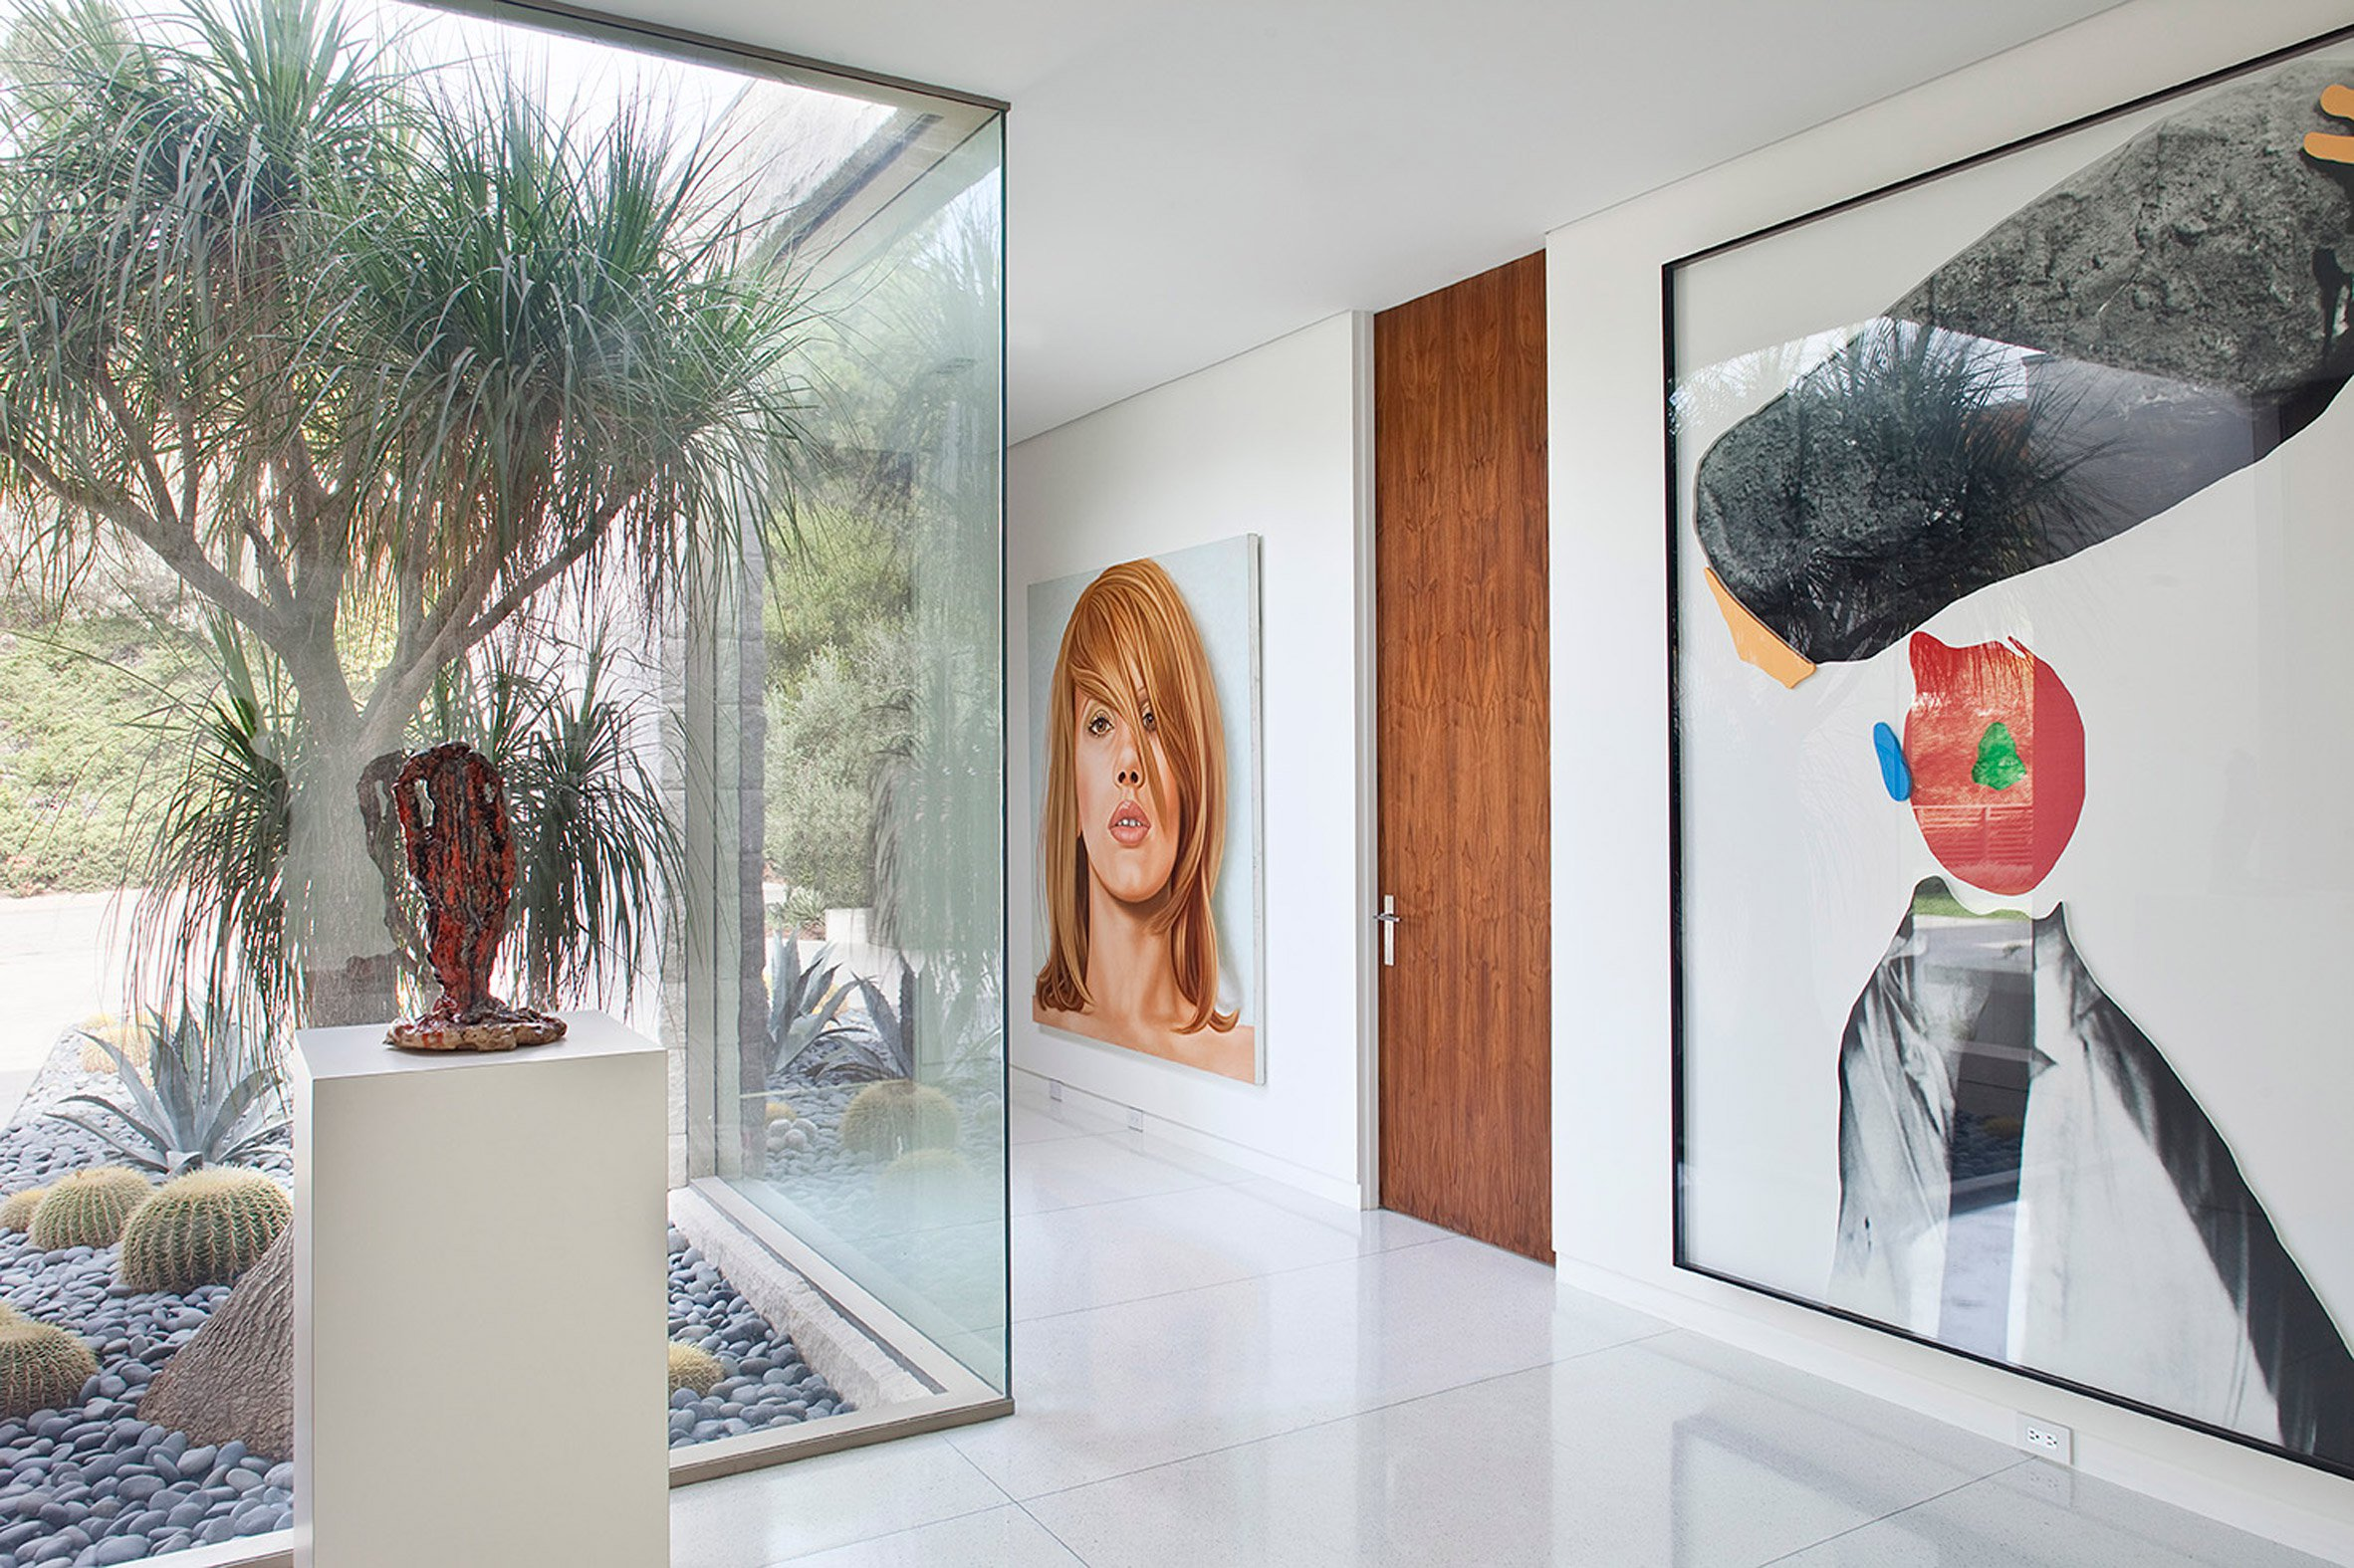 The entrance features a long gallery where the large scale art works are placed, and the rest of the house is built around this space